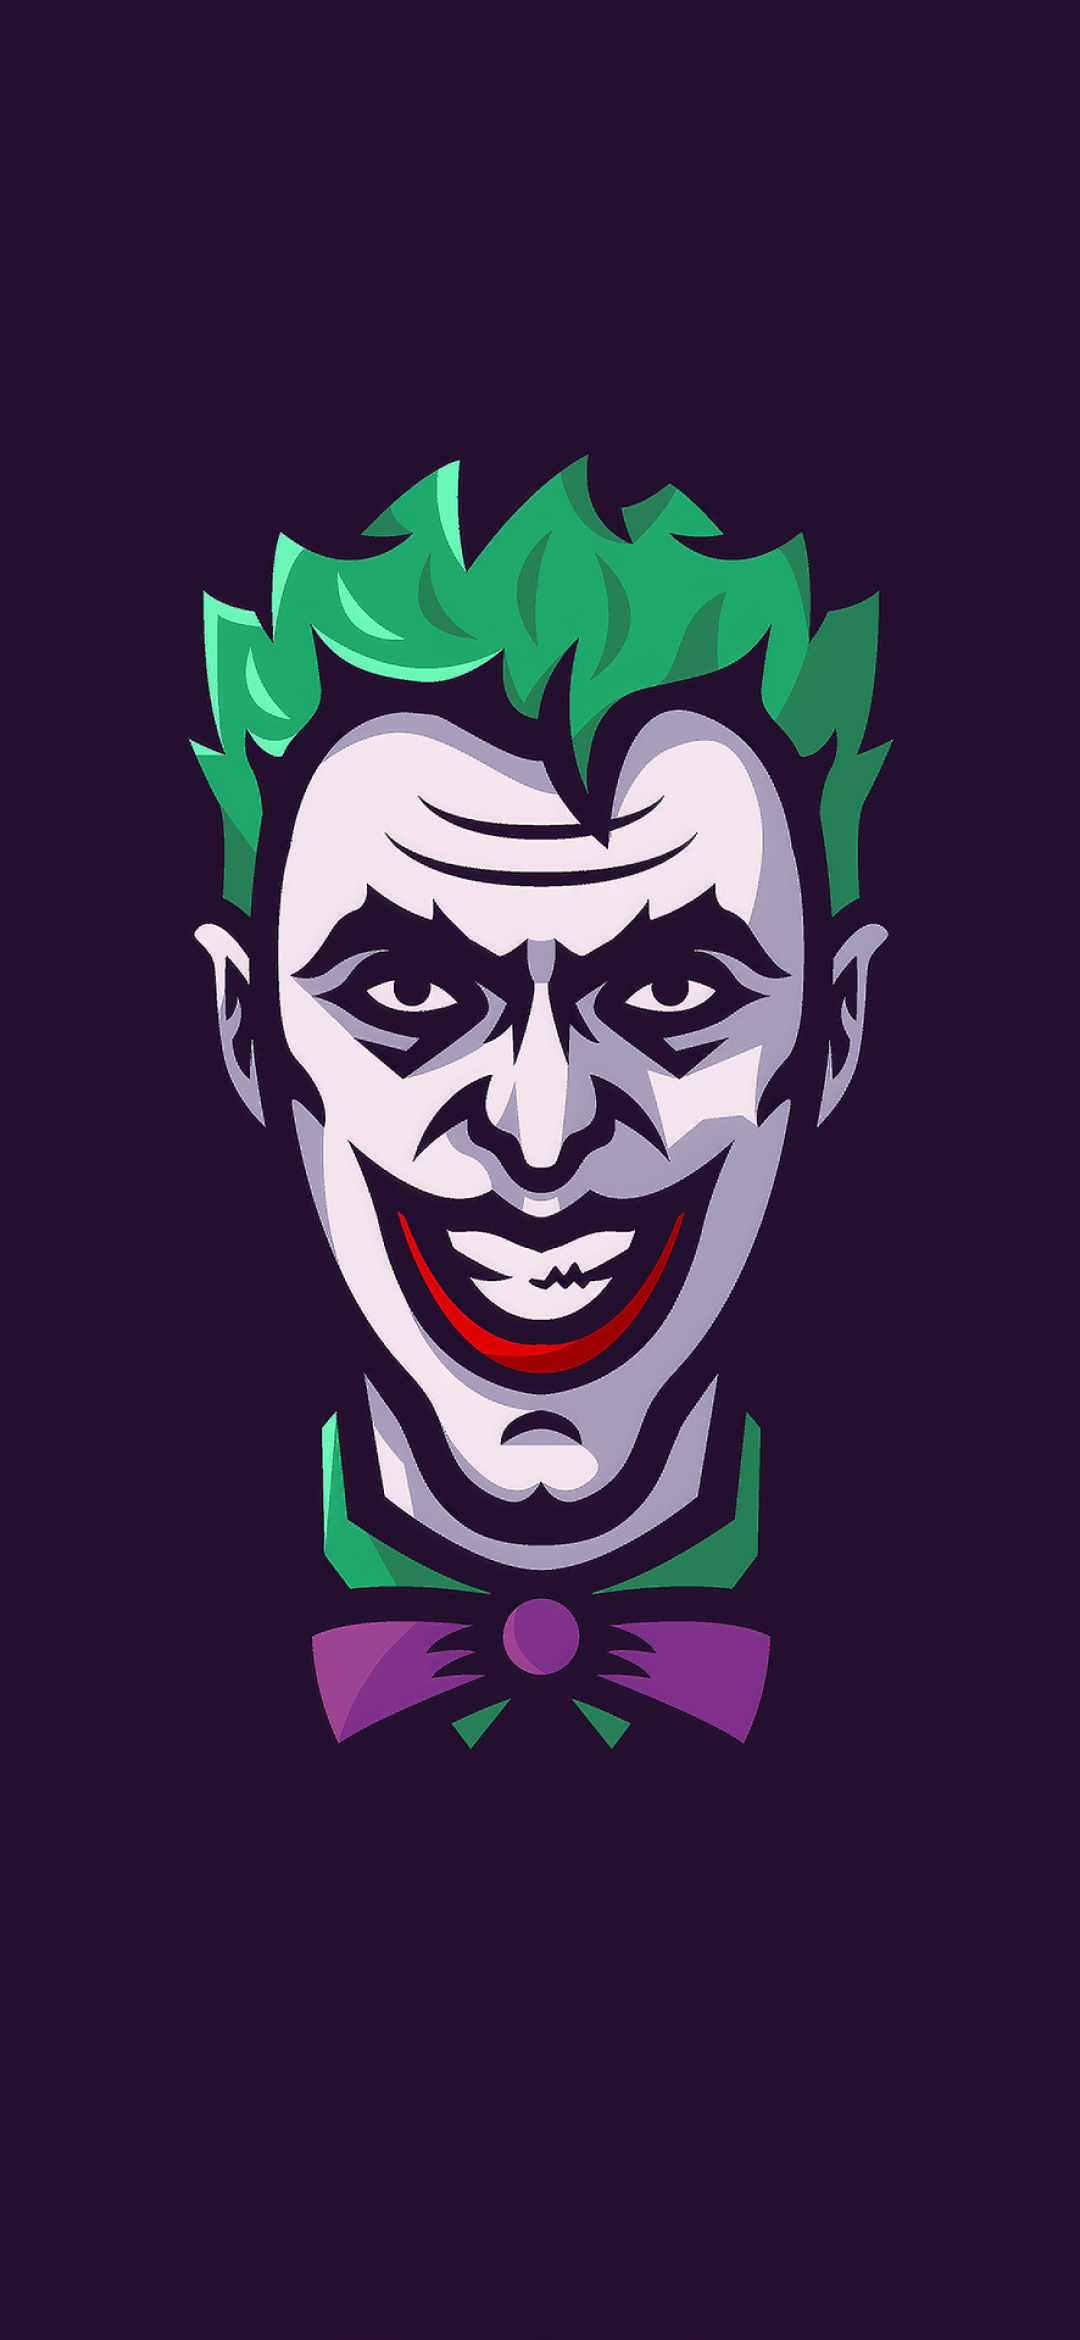 1080x2340 Minimal Joker Art 1080x2340 Resolution Wallpaper Hd Minimalist 4k Wallpapers Images Photos And Background Tons of awesome joker hd wallpapers to download for free. 1080x2340 minimal joker art 1080x2340